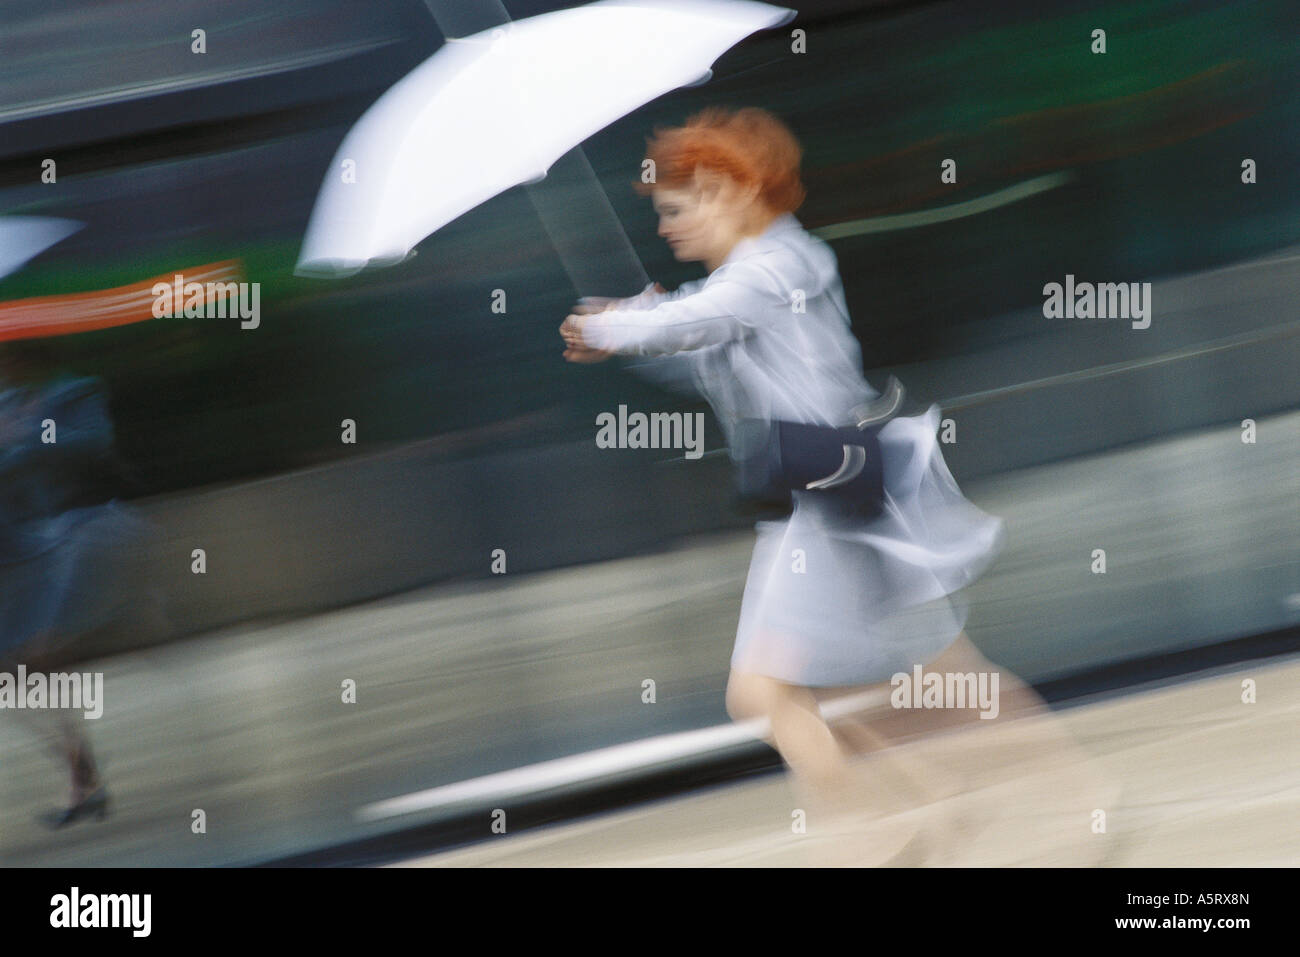 Businesswoman hurrying with umbrella - Stock Image